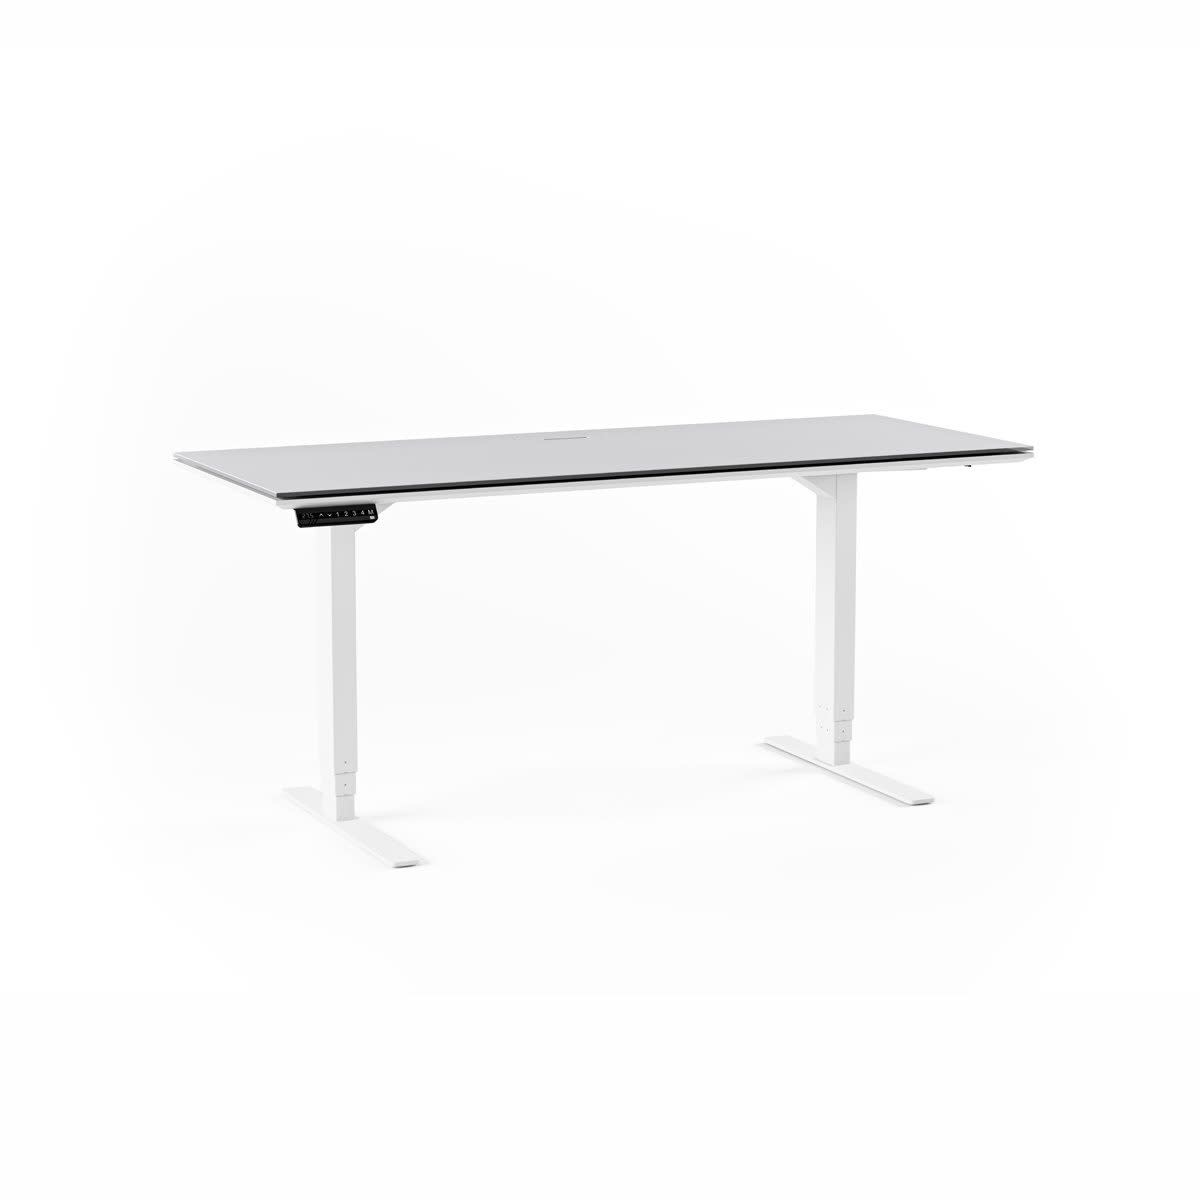 "BDI Centro 6451 Lift Desk ( 66"" x 24"" top )"